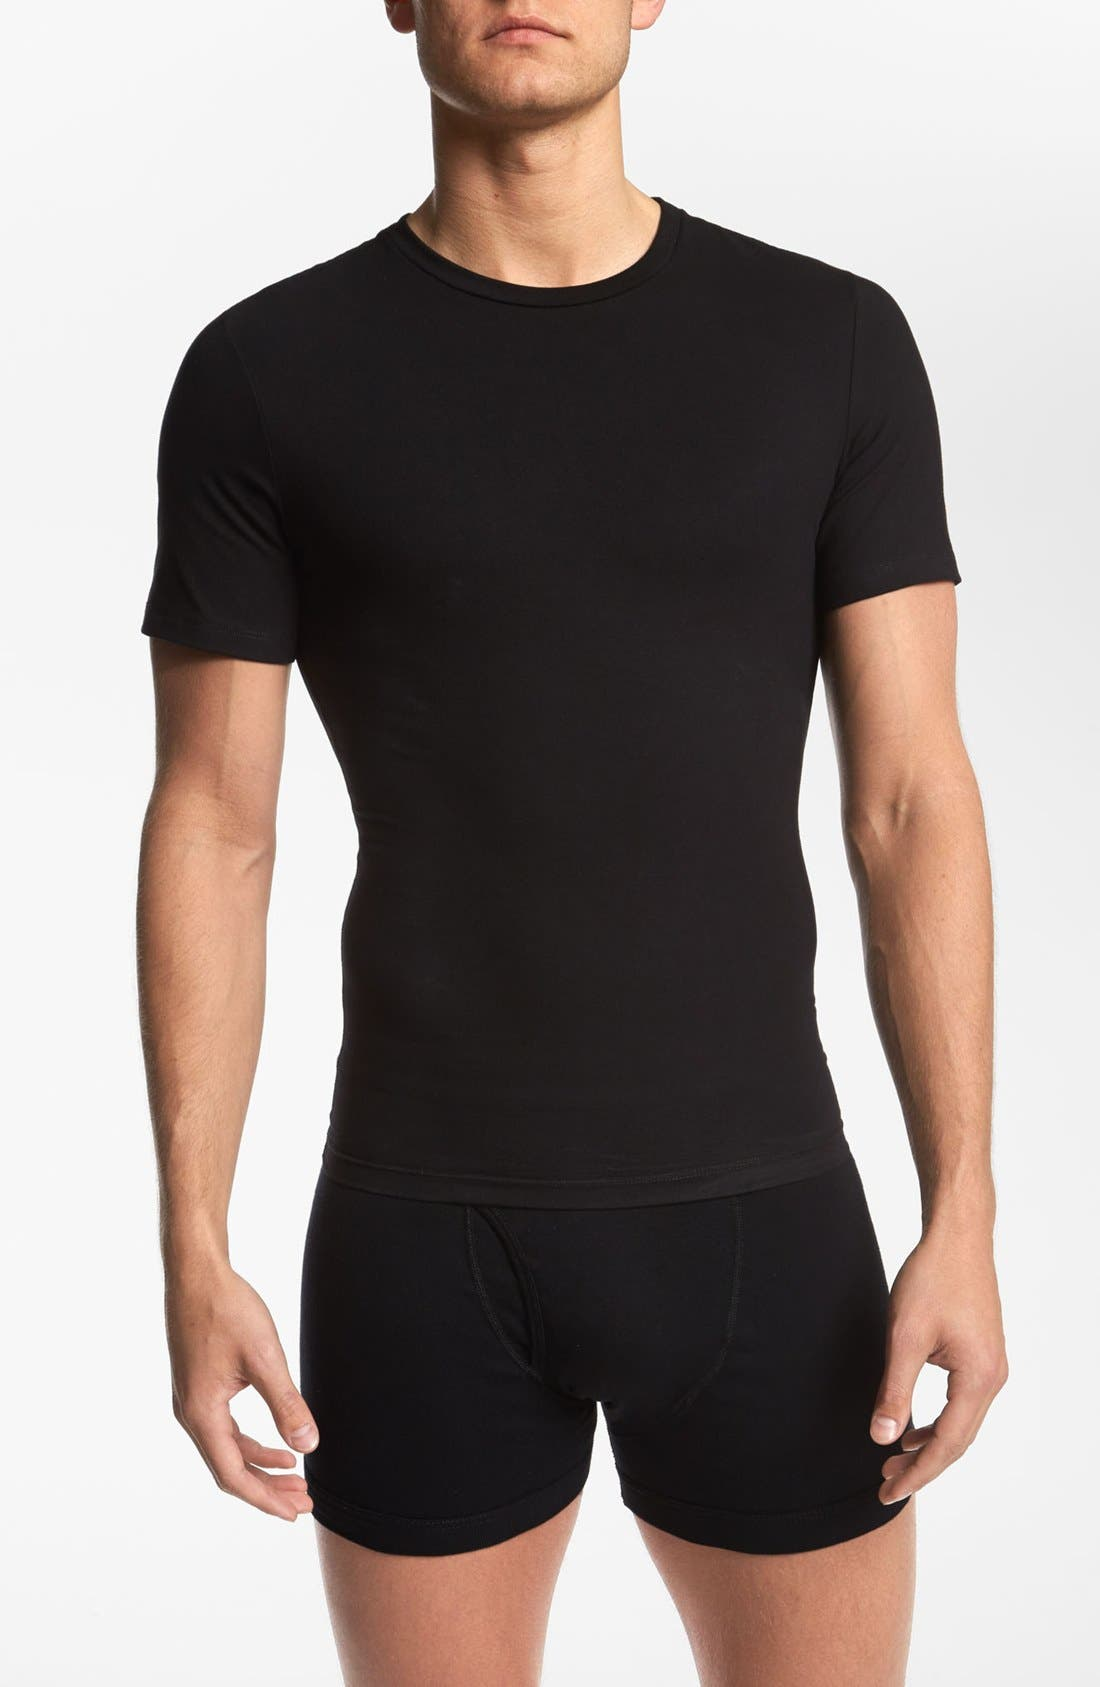 Alternate Image 1 Selected - SPANX® Crewneck Cotton Compression T-Shirt